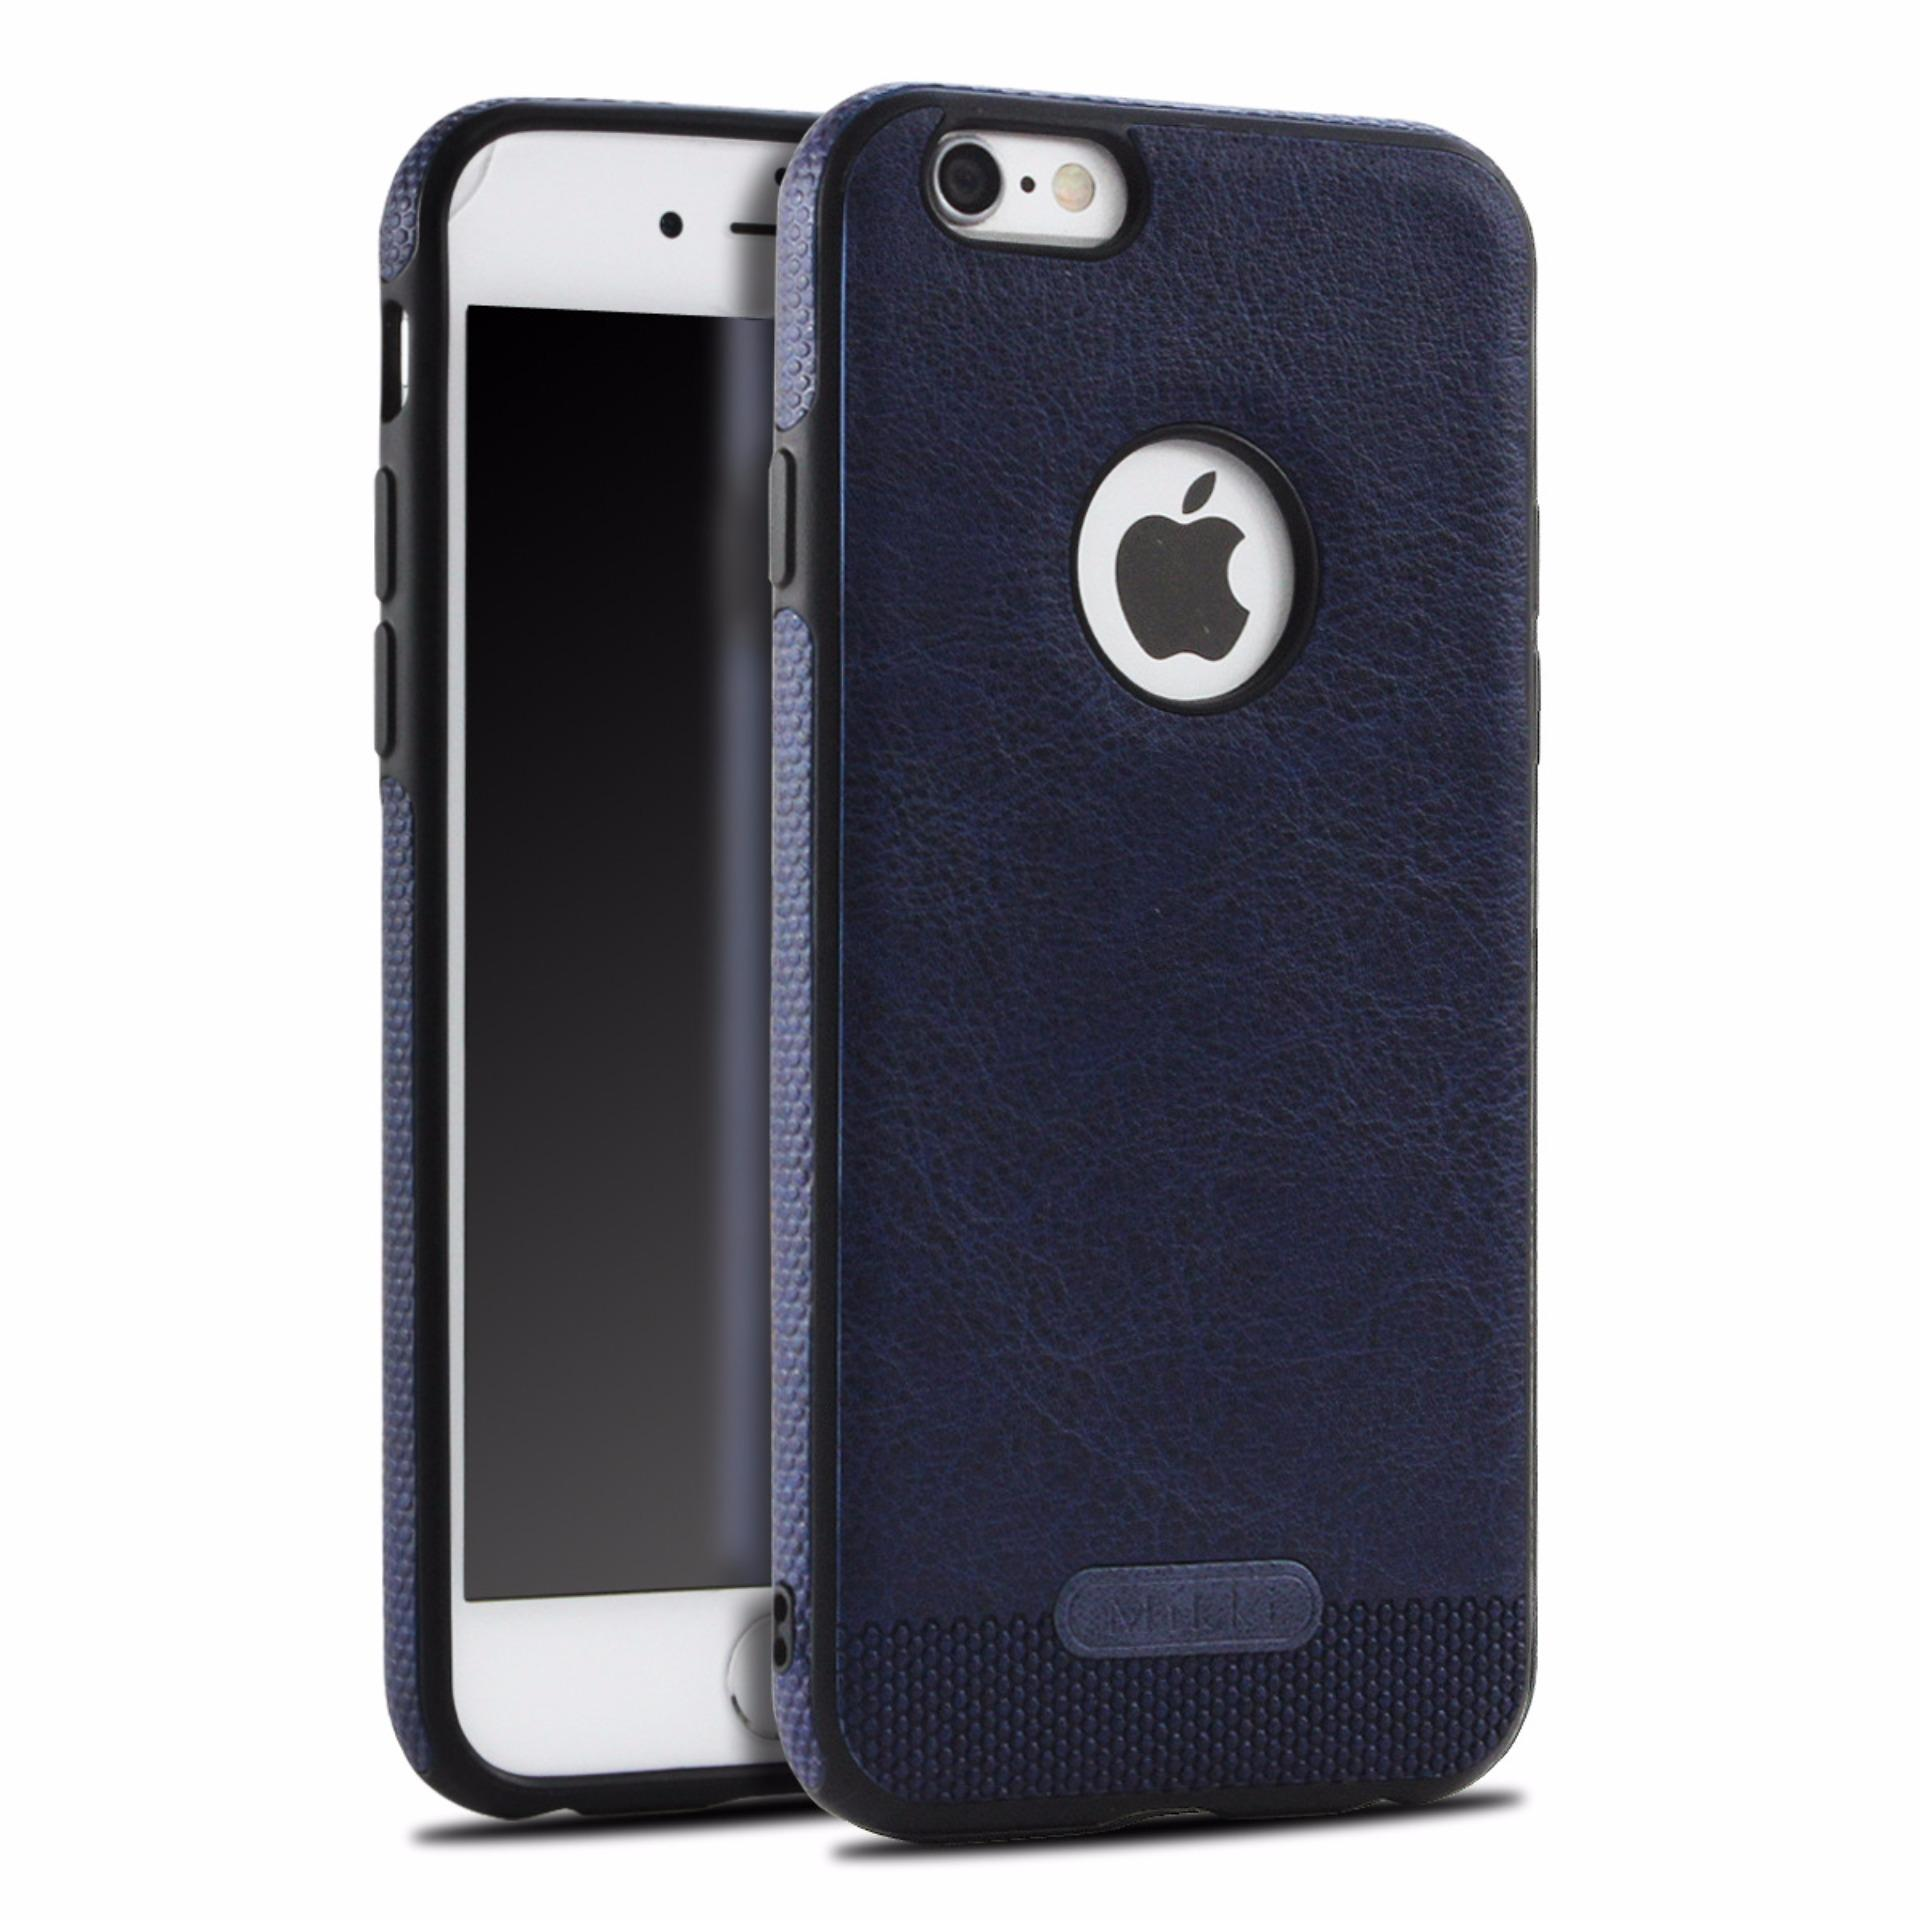 Harga Casing Case Iphone 6 Plus 6S Plus Leather Kulit Dan Spesifikasinya